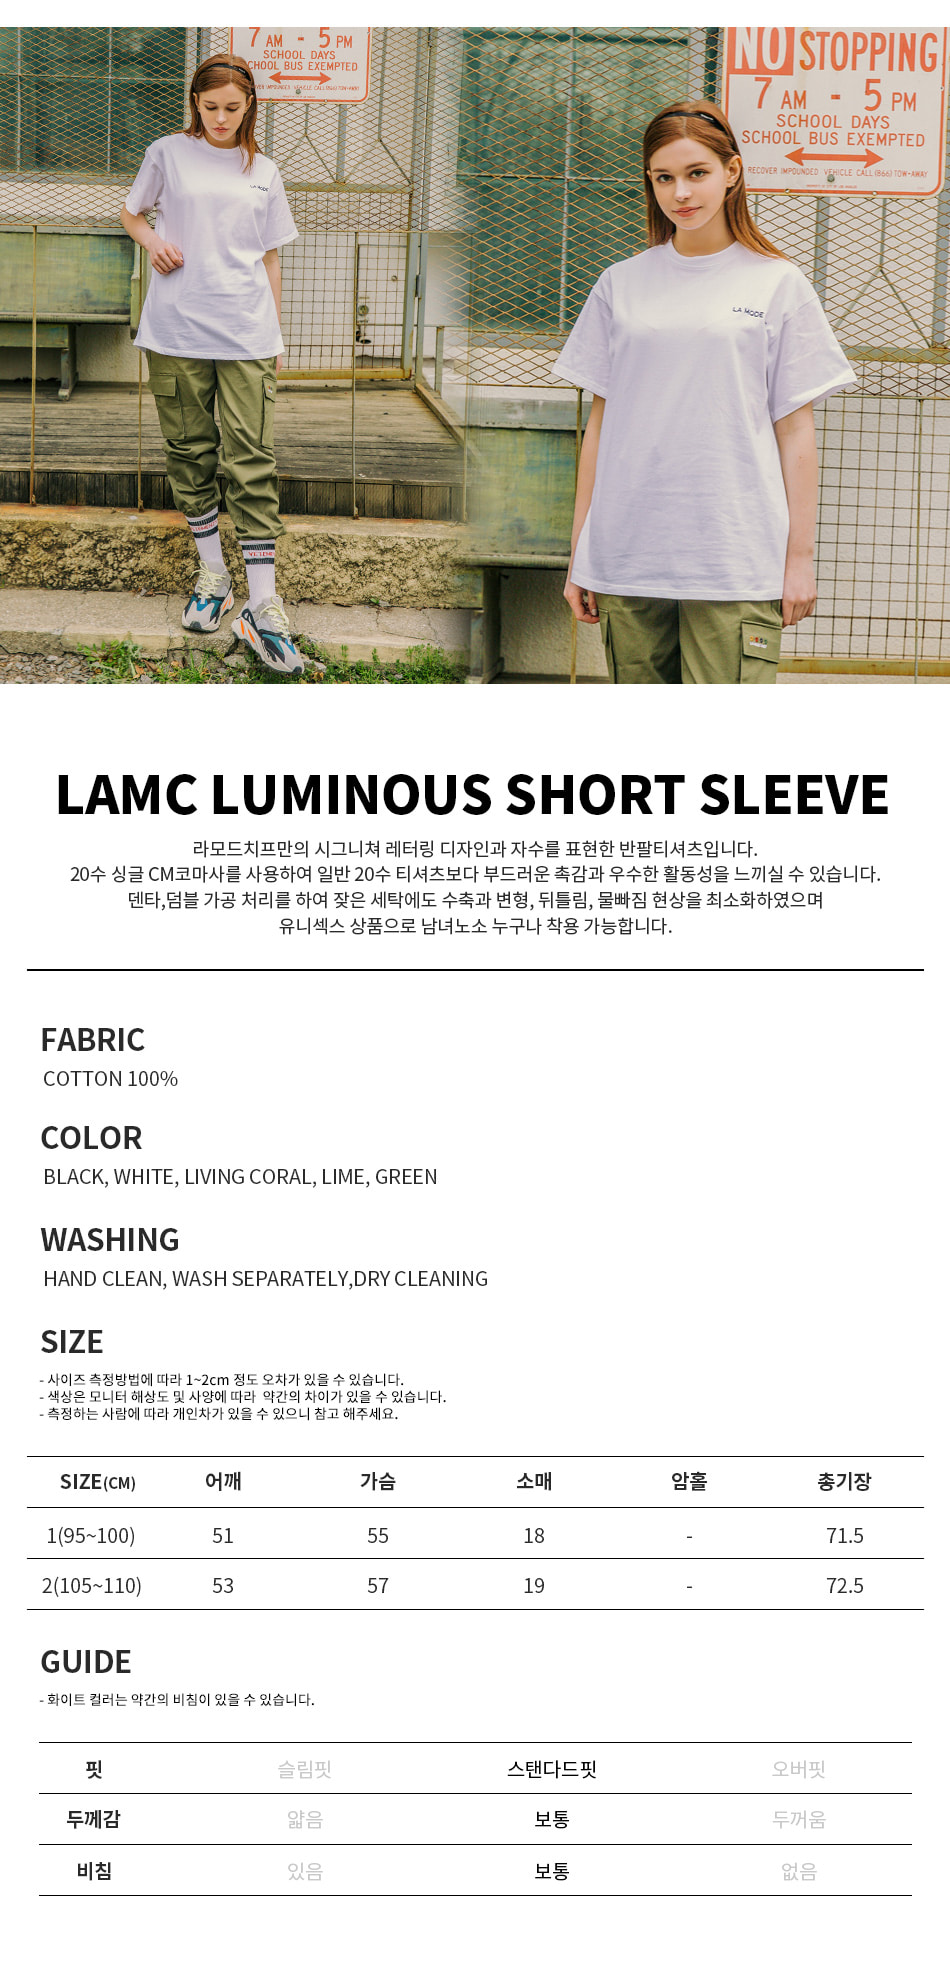 라모드치프(LAMODECHIEF) LAMC LUMINOUS SHORT SLEEVE (WHITE)